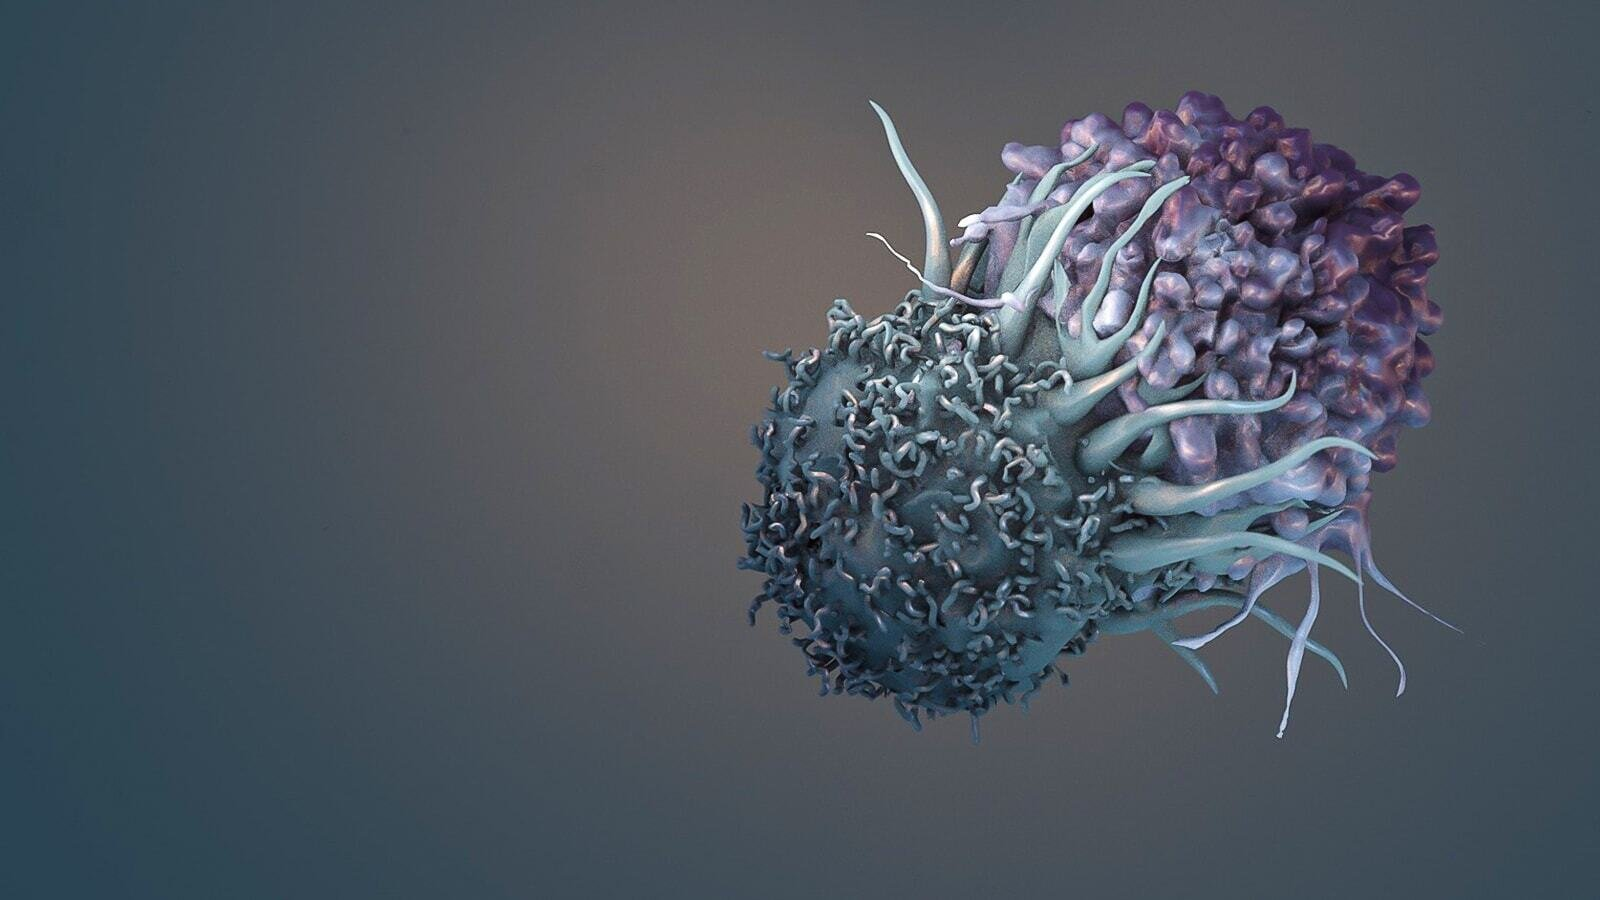 Computing empowers immune cells to kill cancer